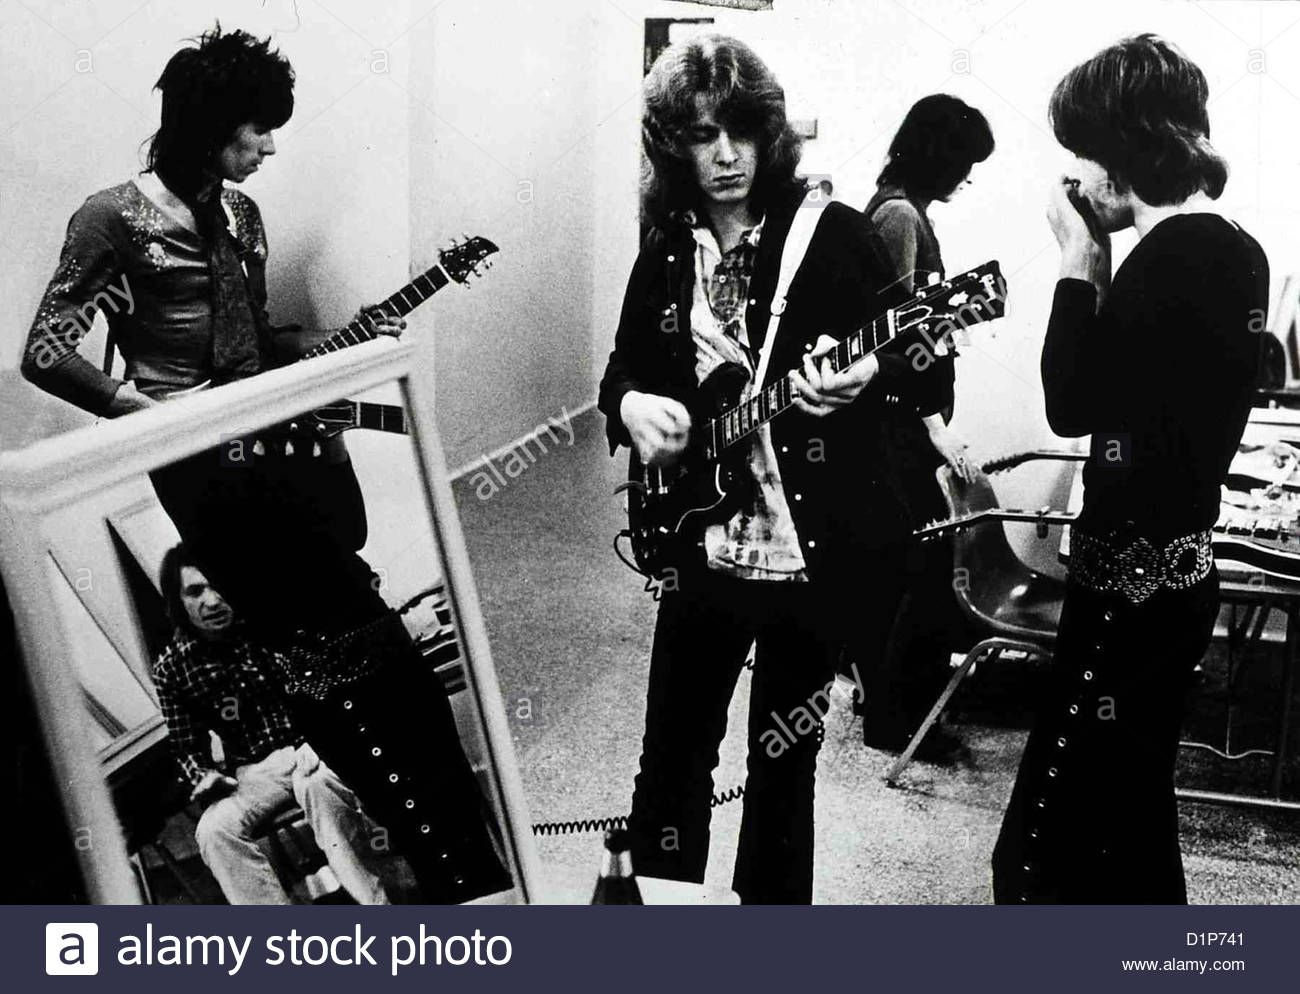 Mick Taylor with Mick and Keith